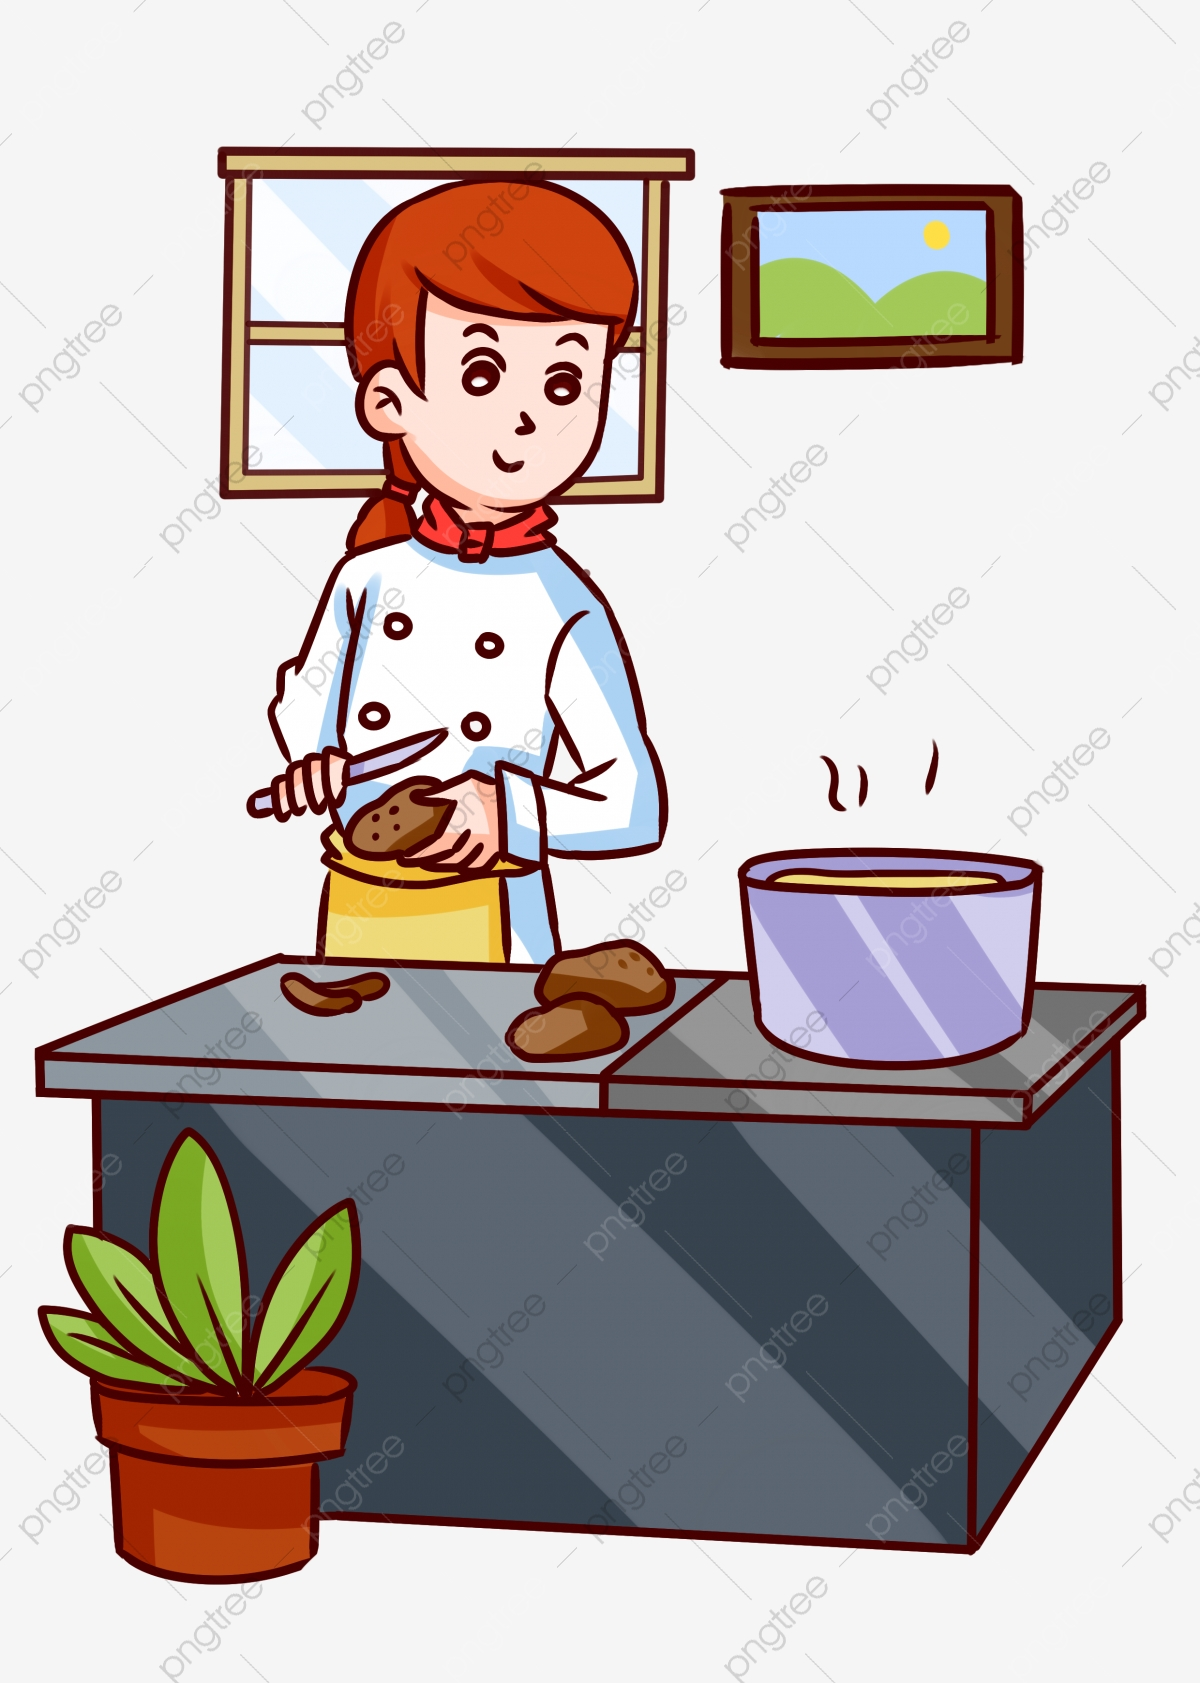 hight resolution of commercial use resource upgrade to premium plan and get license authorization upgradenow happy cooking cooking clipart